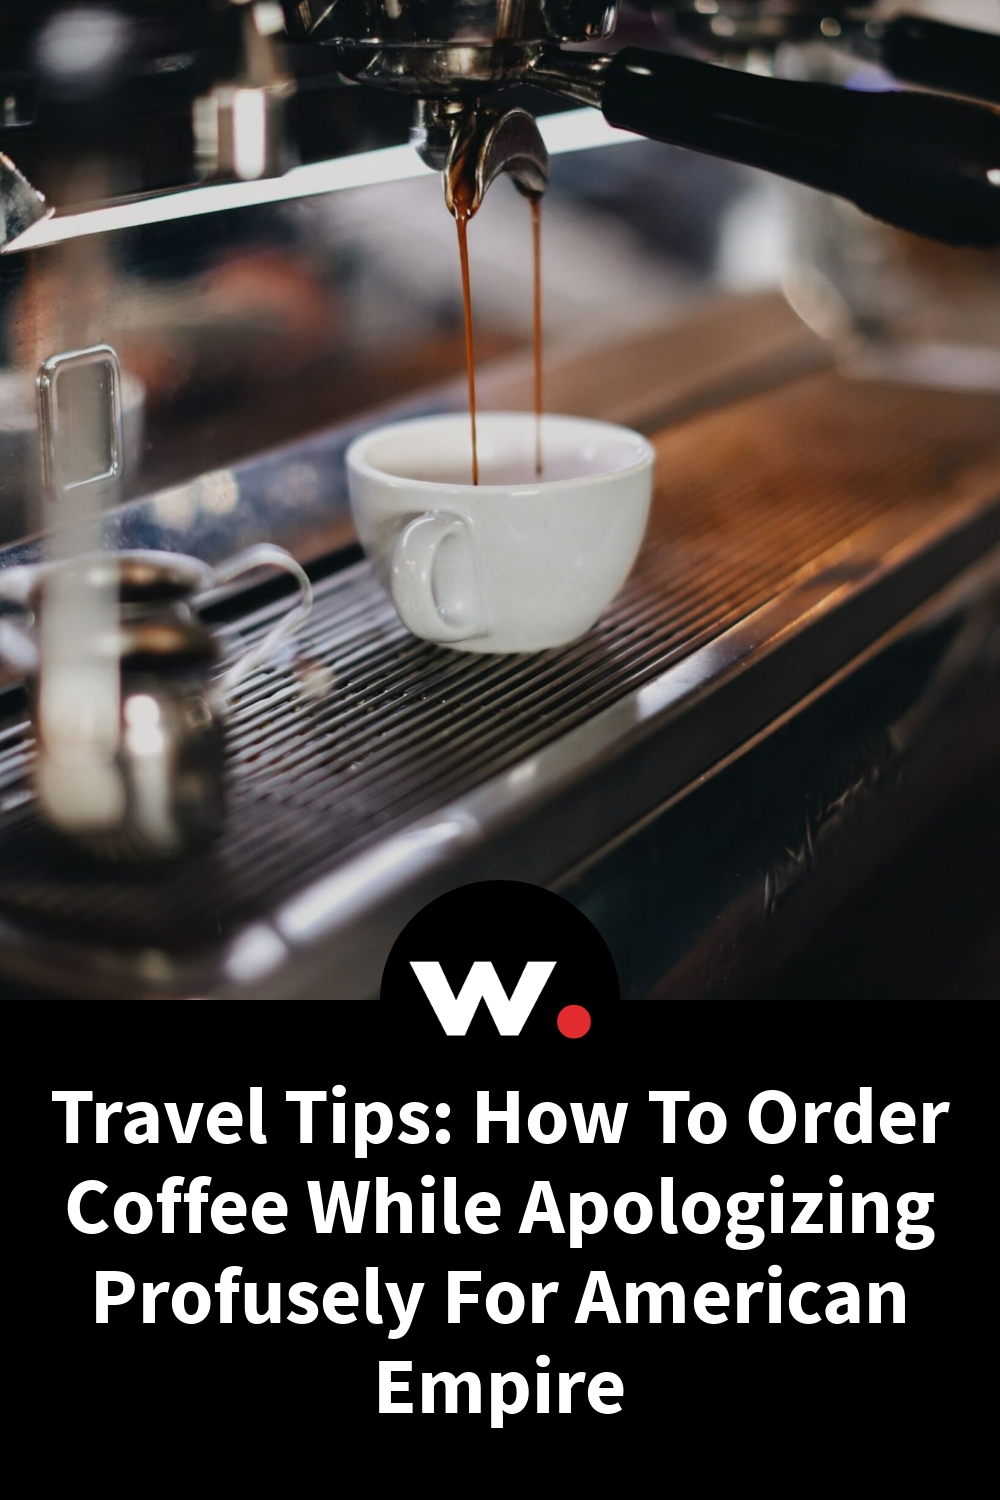 Travel Tips: How To Order Coffee While Apologizing Profusely For American Empire